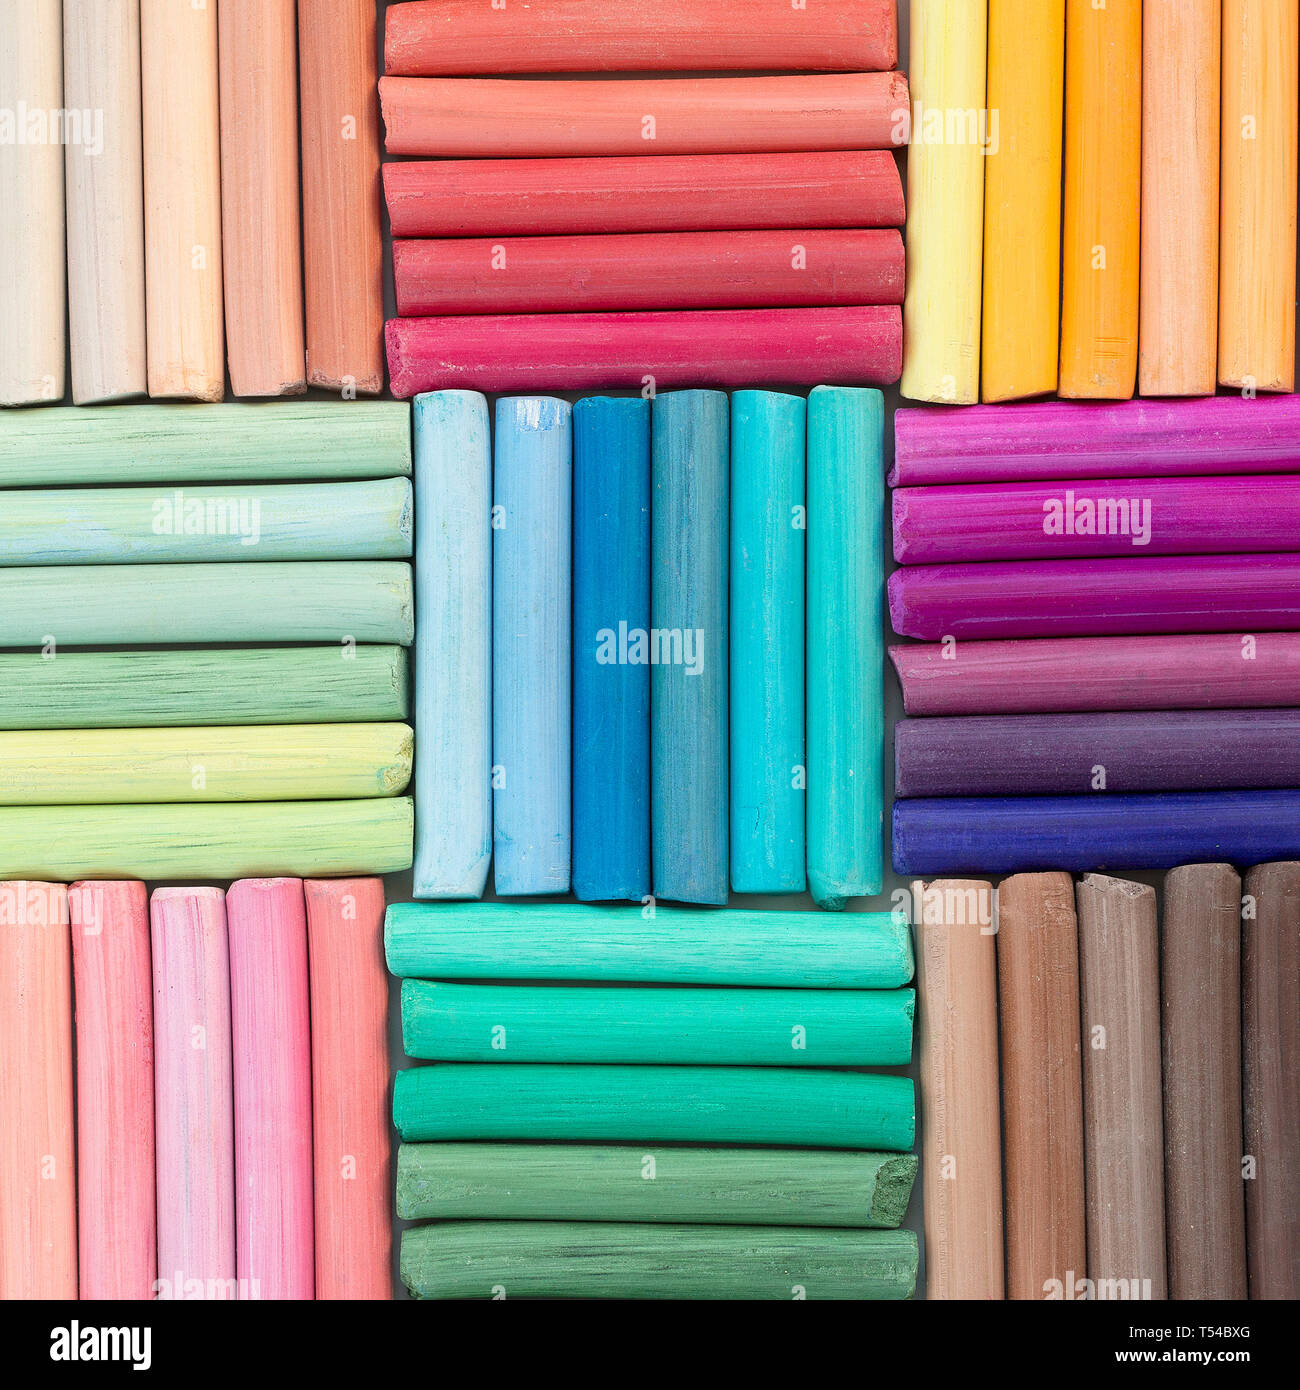 Rainbow pastel crayons in rows as background. Square image - Stock Image